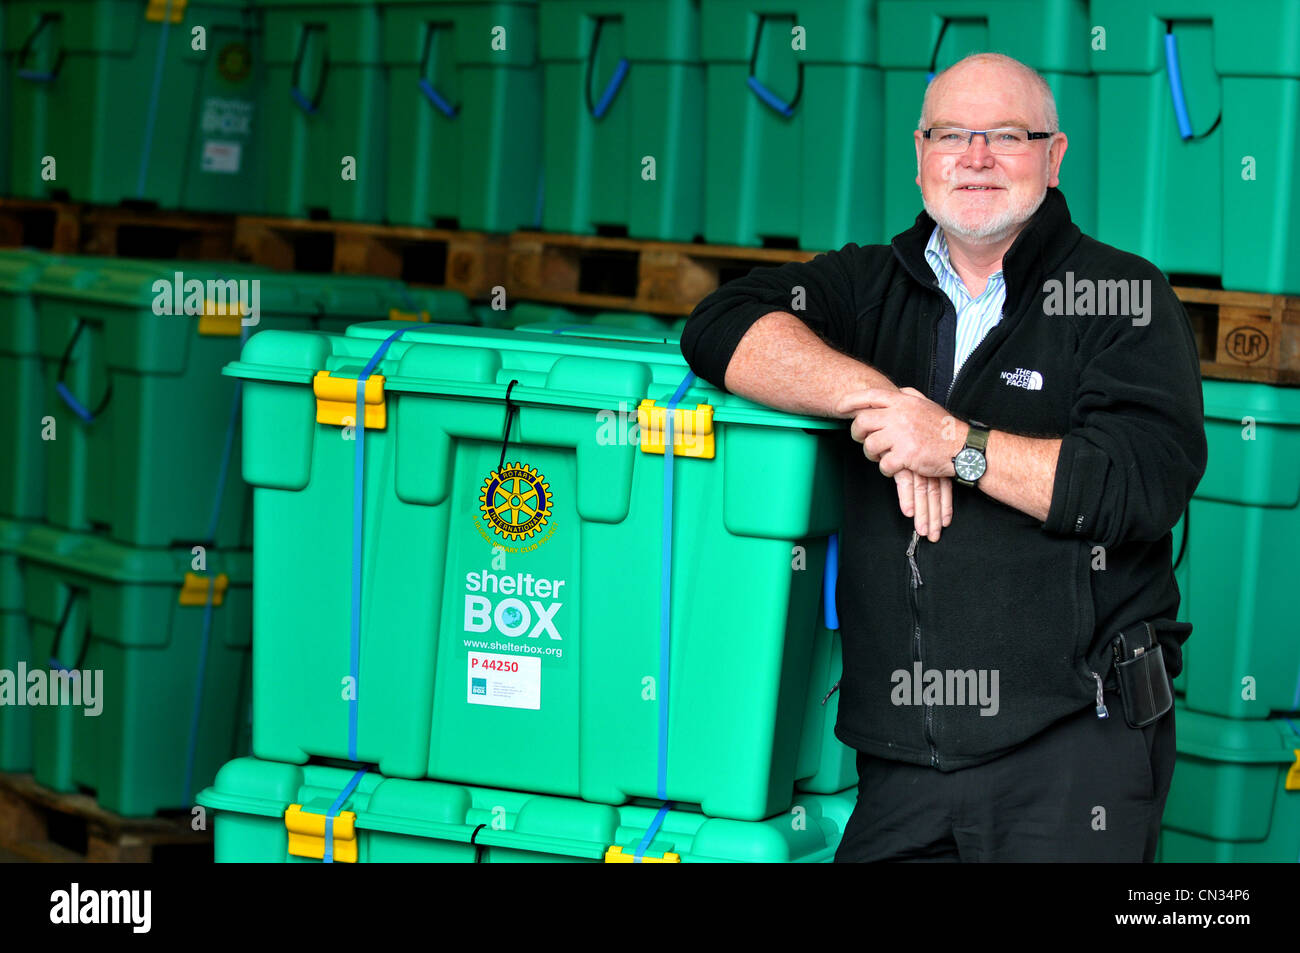 ShelterBox, Founder of ShelterBox Tom Henderson OBE - Stock Image